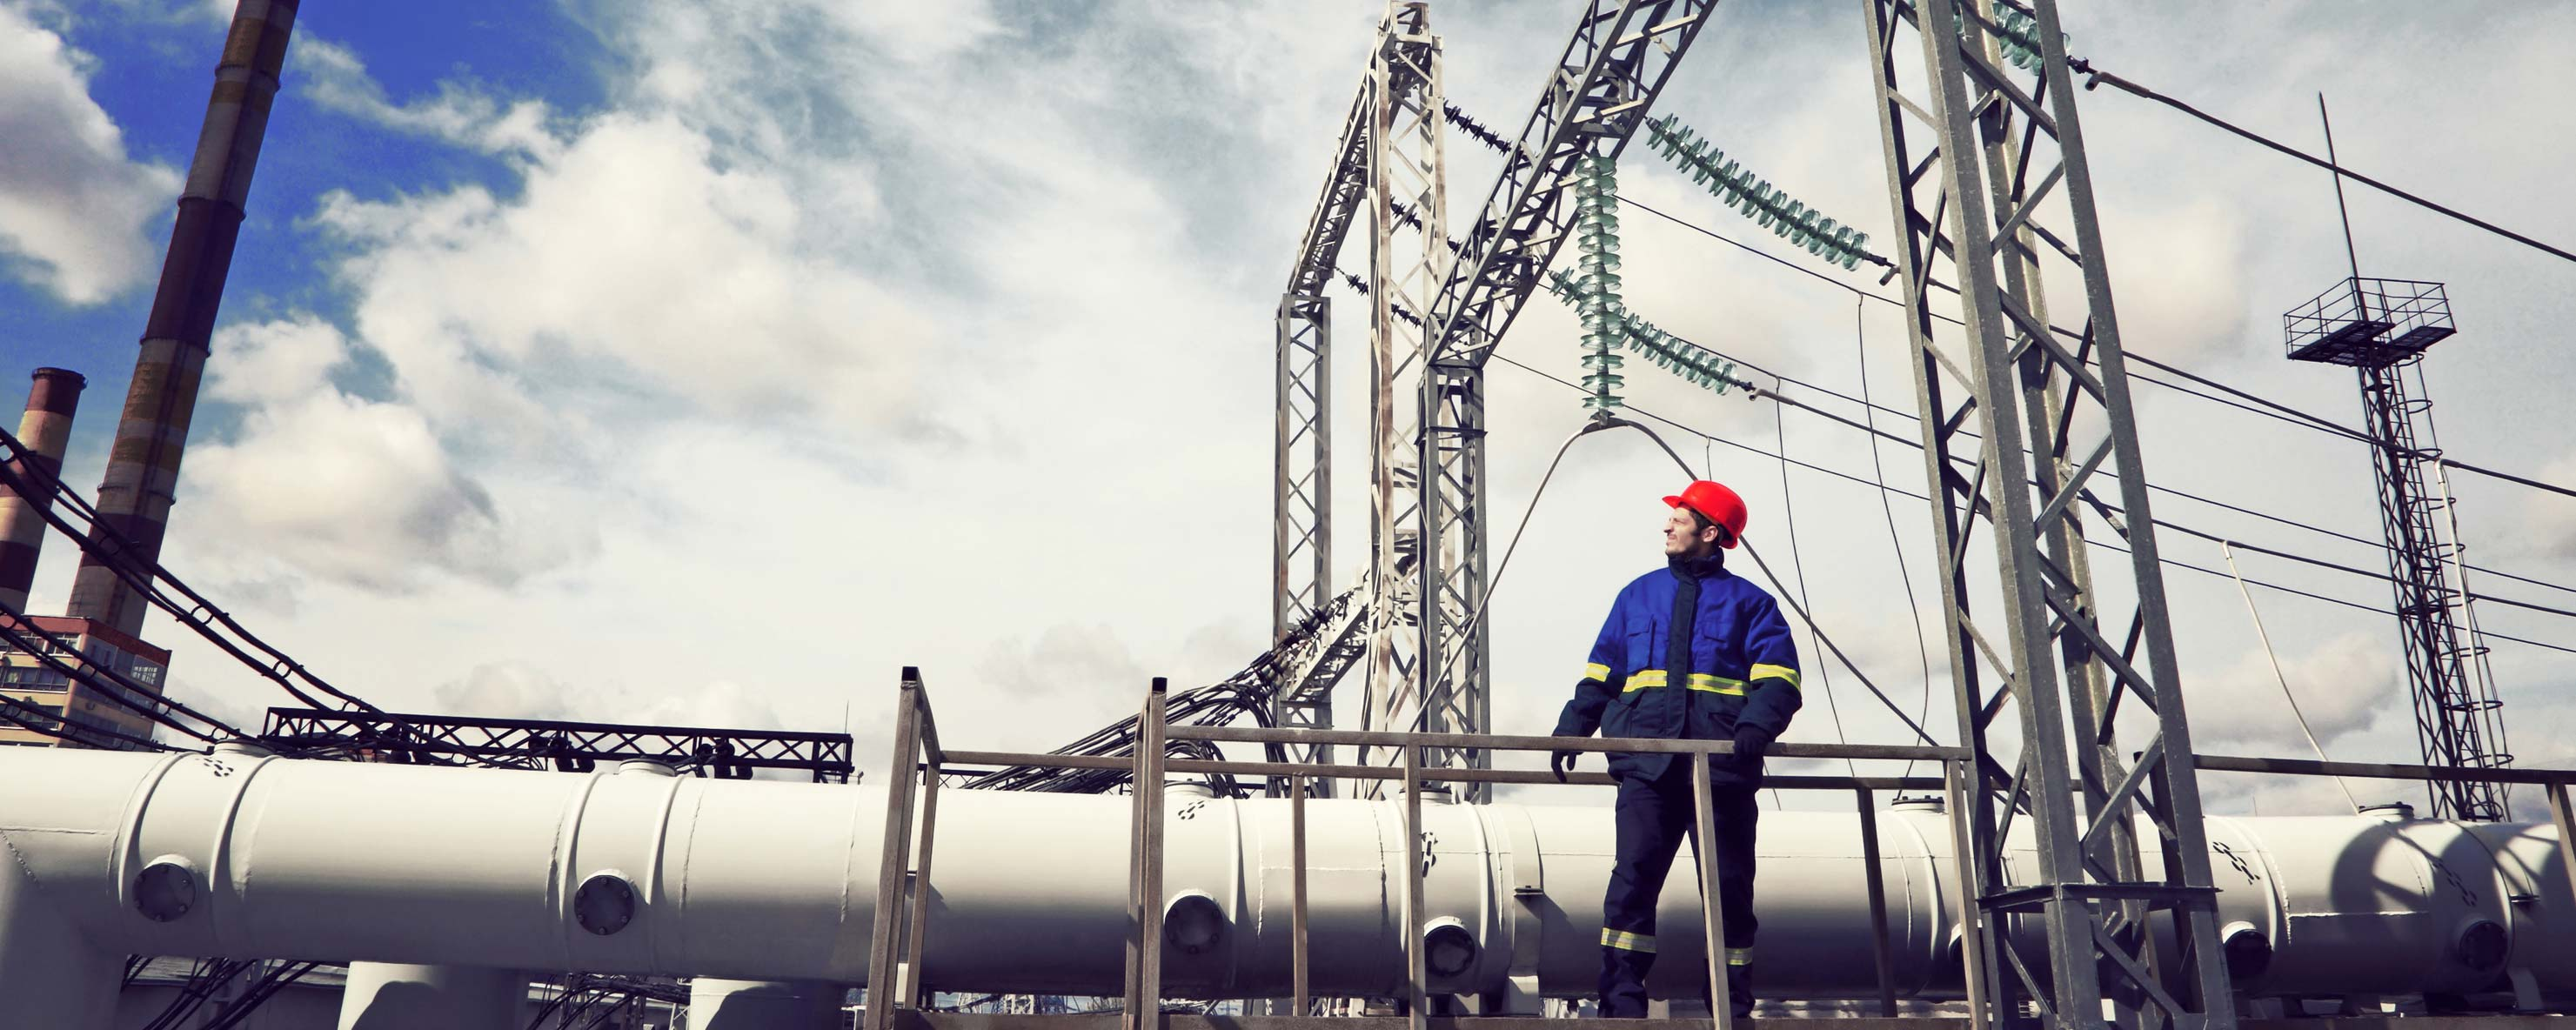 Worker at a power plant